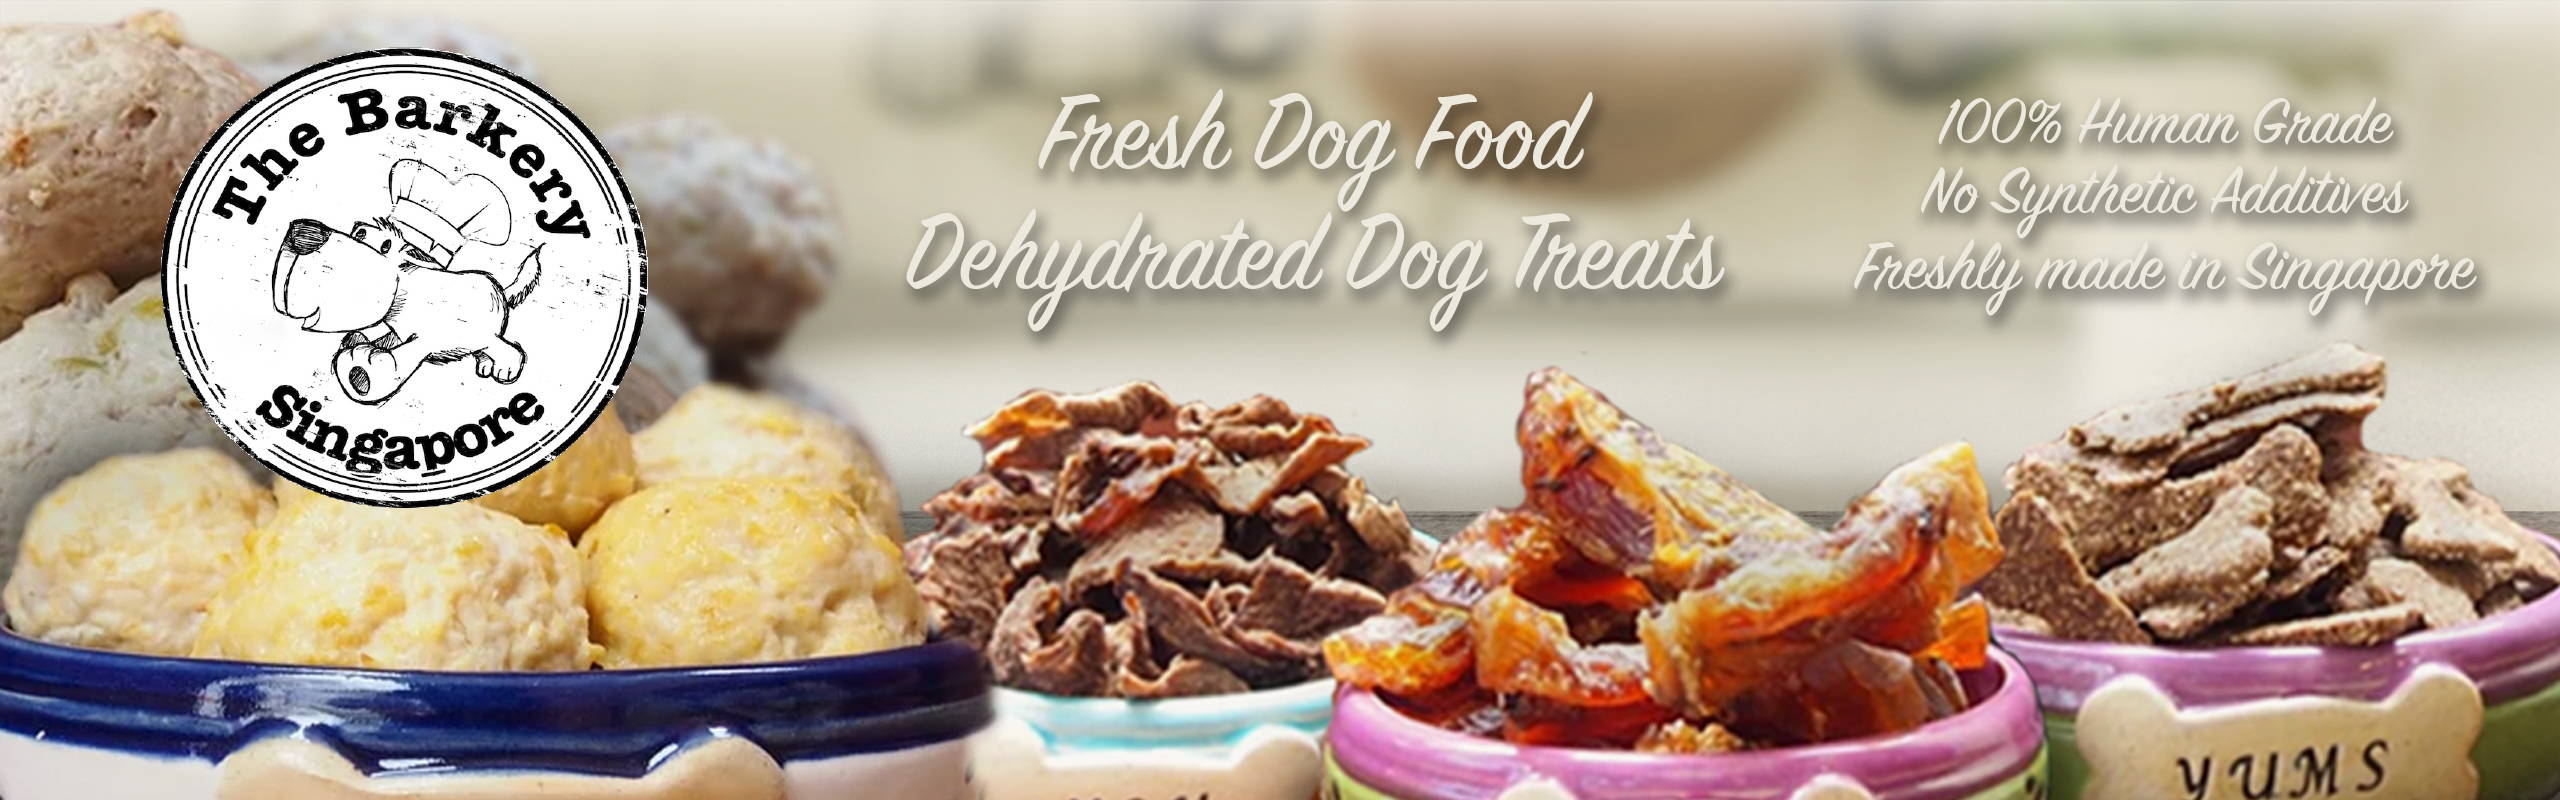 The barkery fresh dog food and dehydrated air-dried treats banner